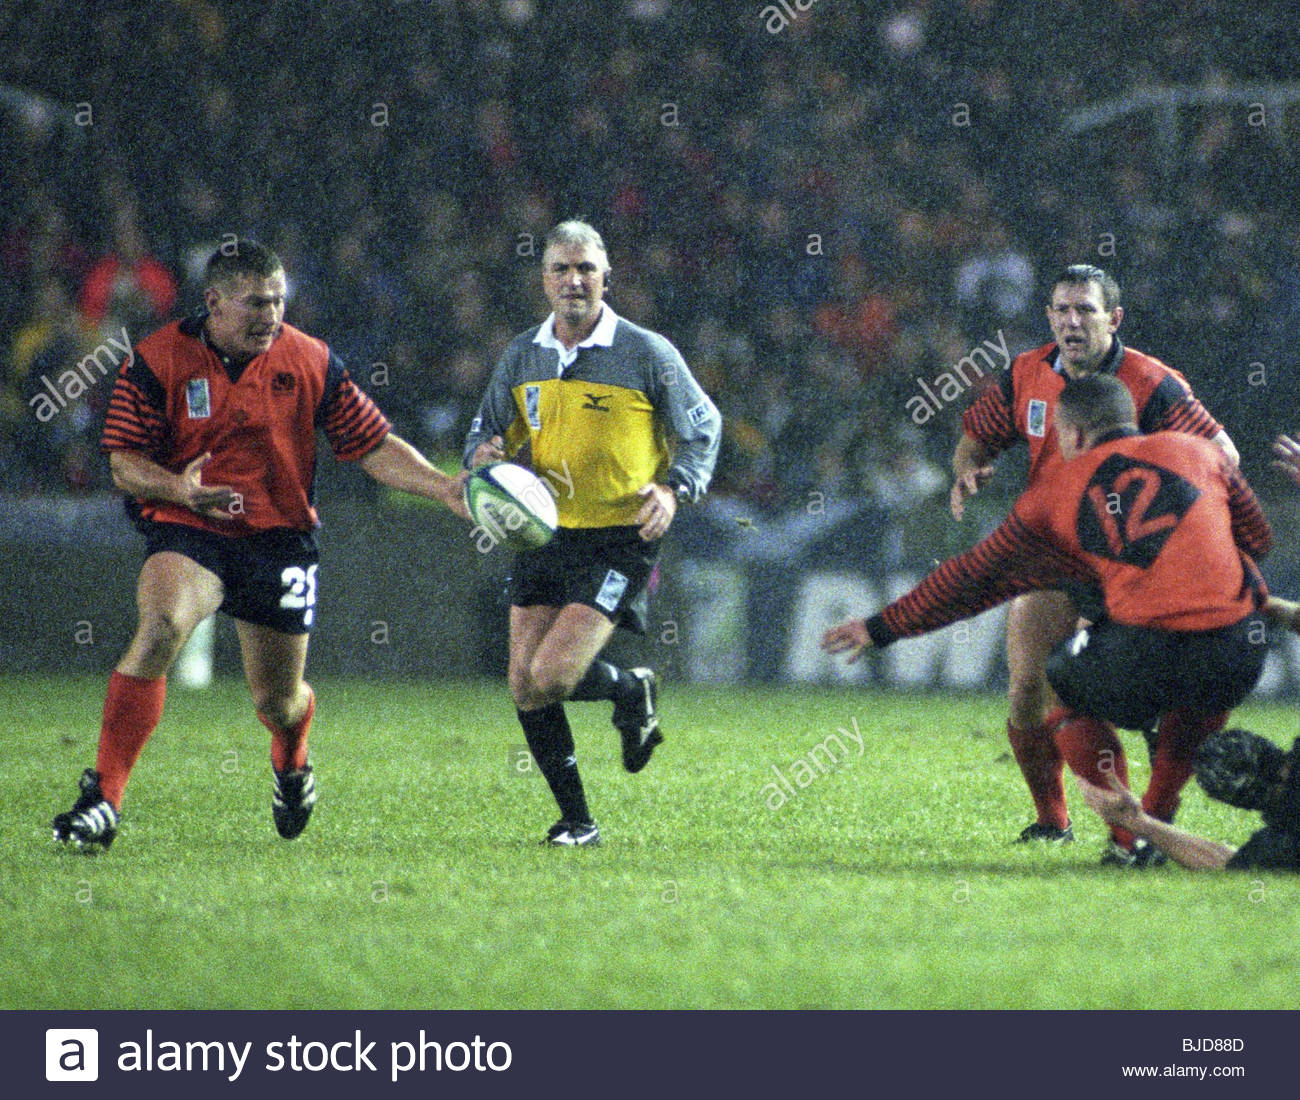 24/10/99 IRB RUGBY WORLD CUP 1999 QUARTER-FINAL SCOTLAND V NEW ZEALAND (18-30) MURRAYFIELD - EDINBURGH Scotland Stock Photo